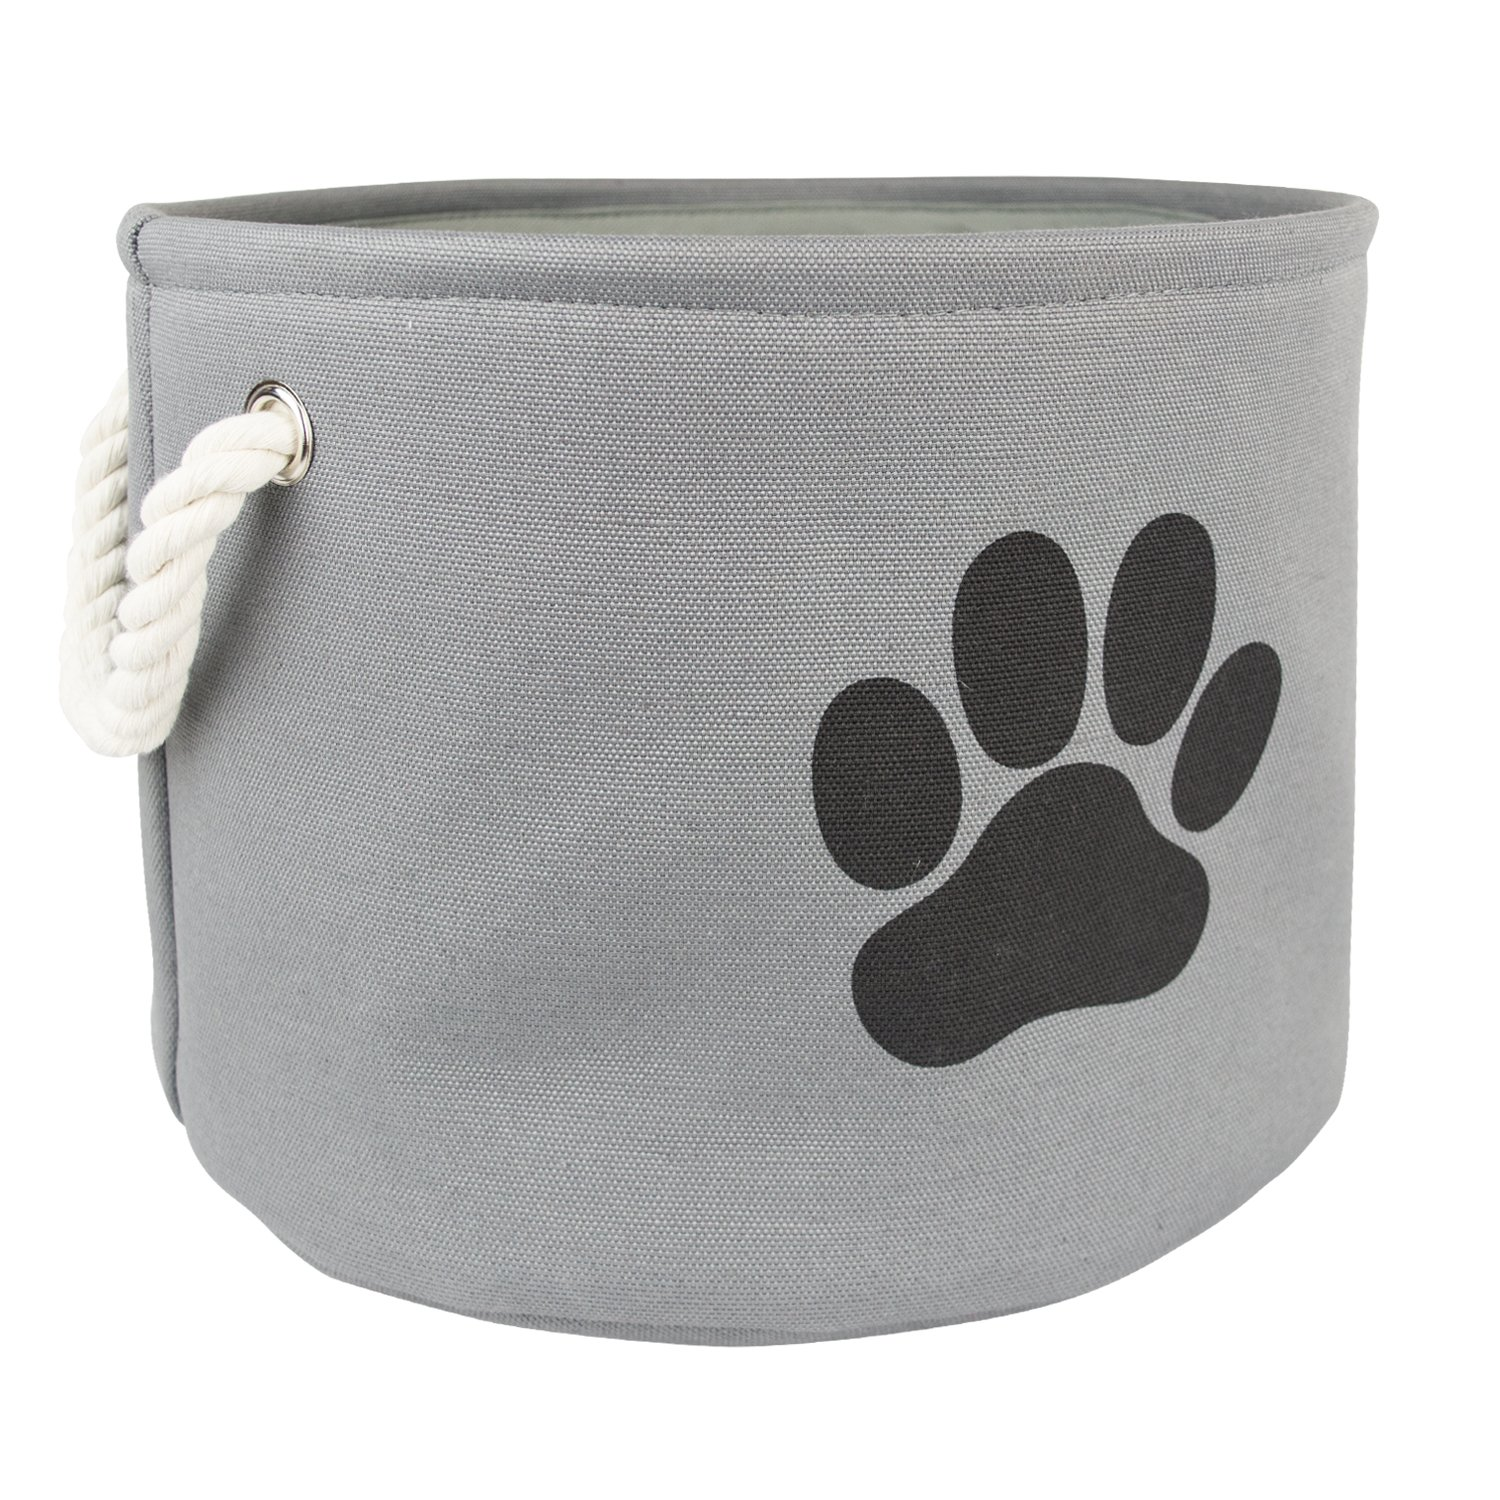 Bone Dry DII Medium Round Pet Toy and Accessory Storage Bin, 14.5''(Dia) x12(H), Collapsible Organizer Storage Basket for Home Décor, Pet Toy, Blankets, Leashes and Food-Gray with Black Paw by Bone Dry (Image #3)